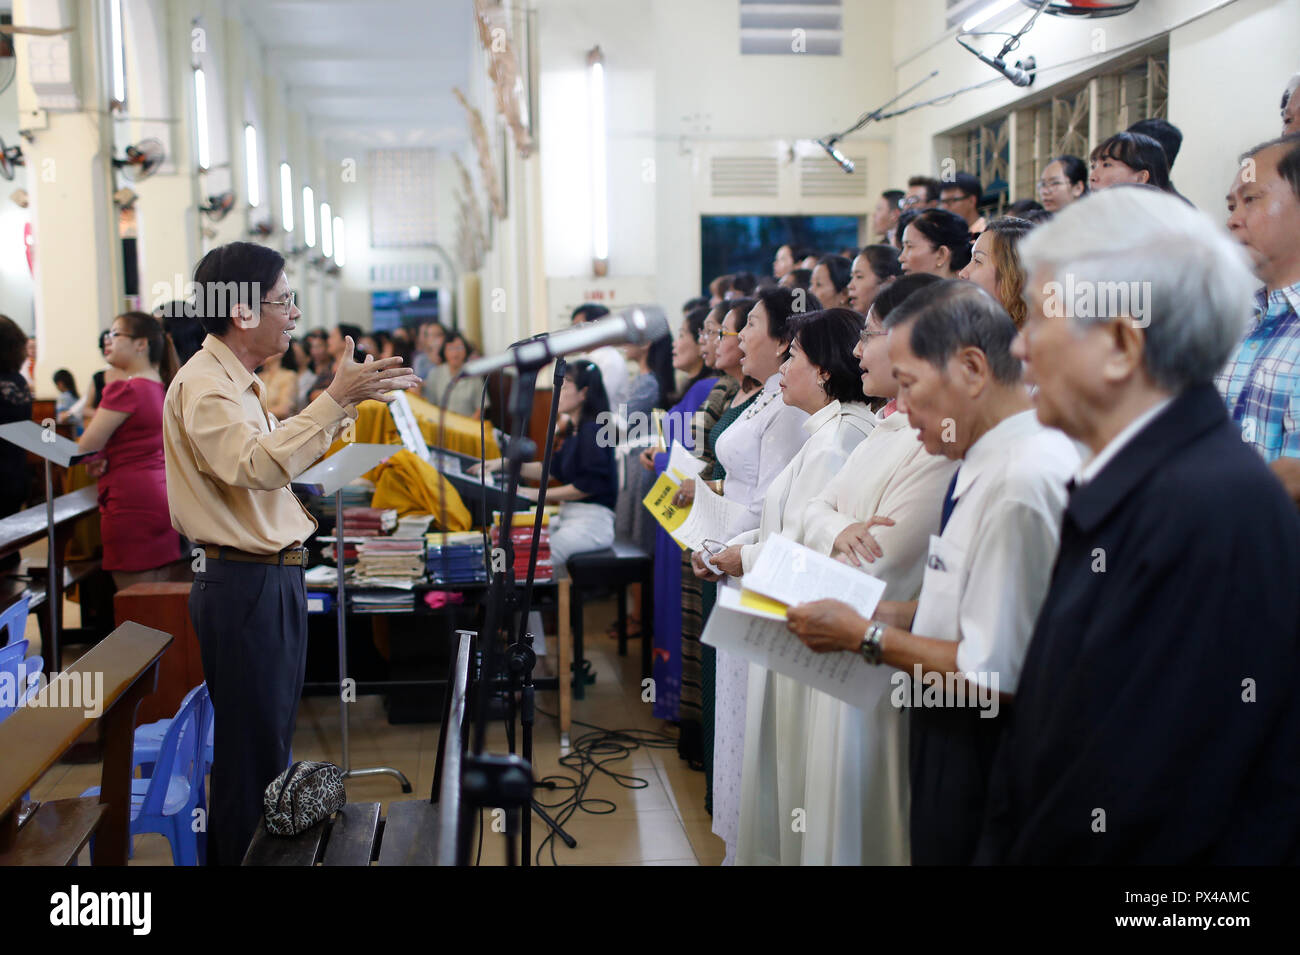 Choral Song Stock Photos & Choral Song Stock Images - Alamy